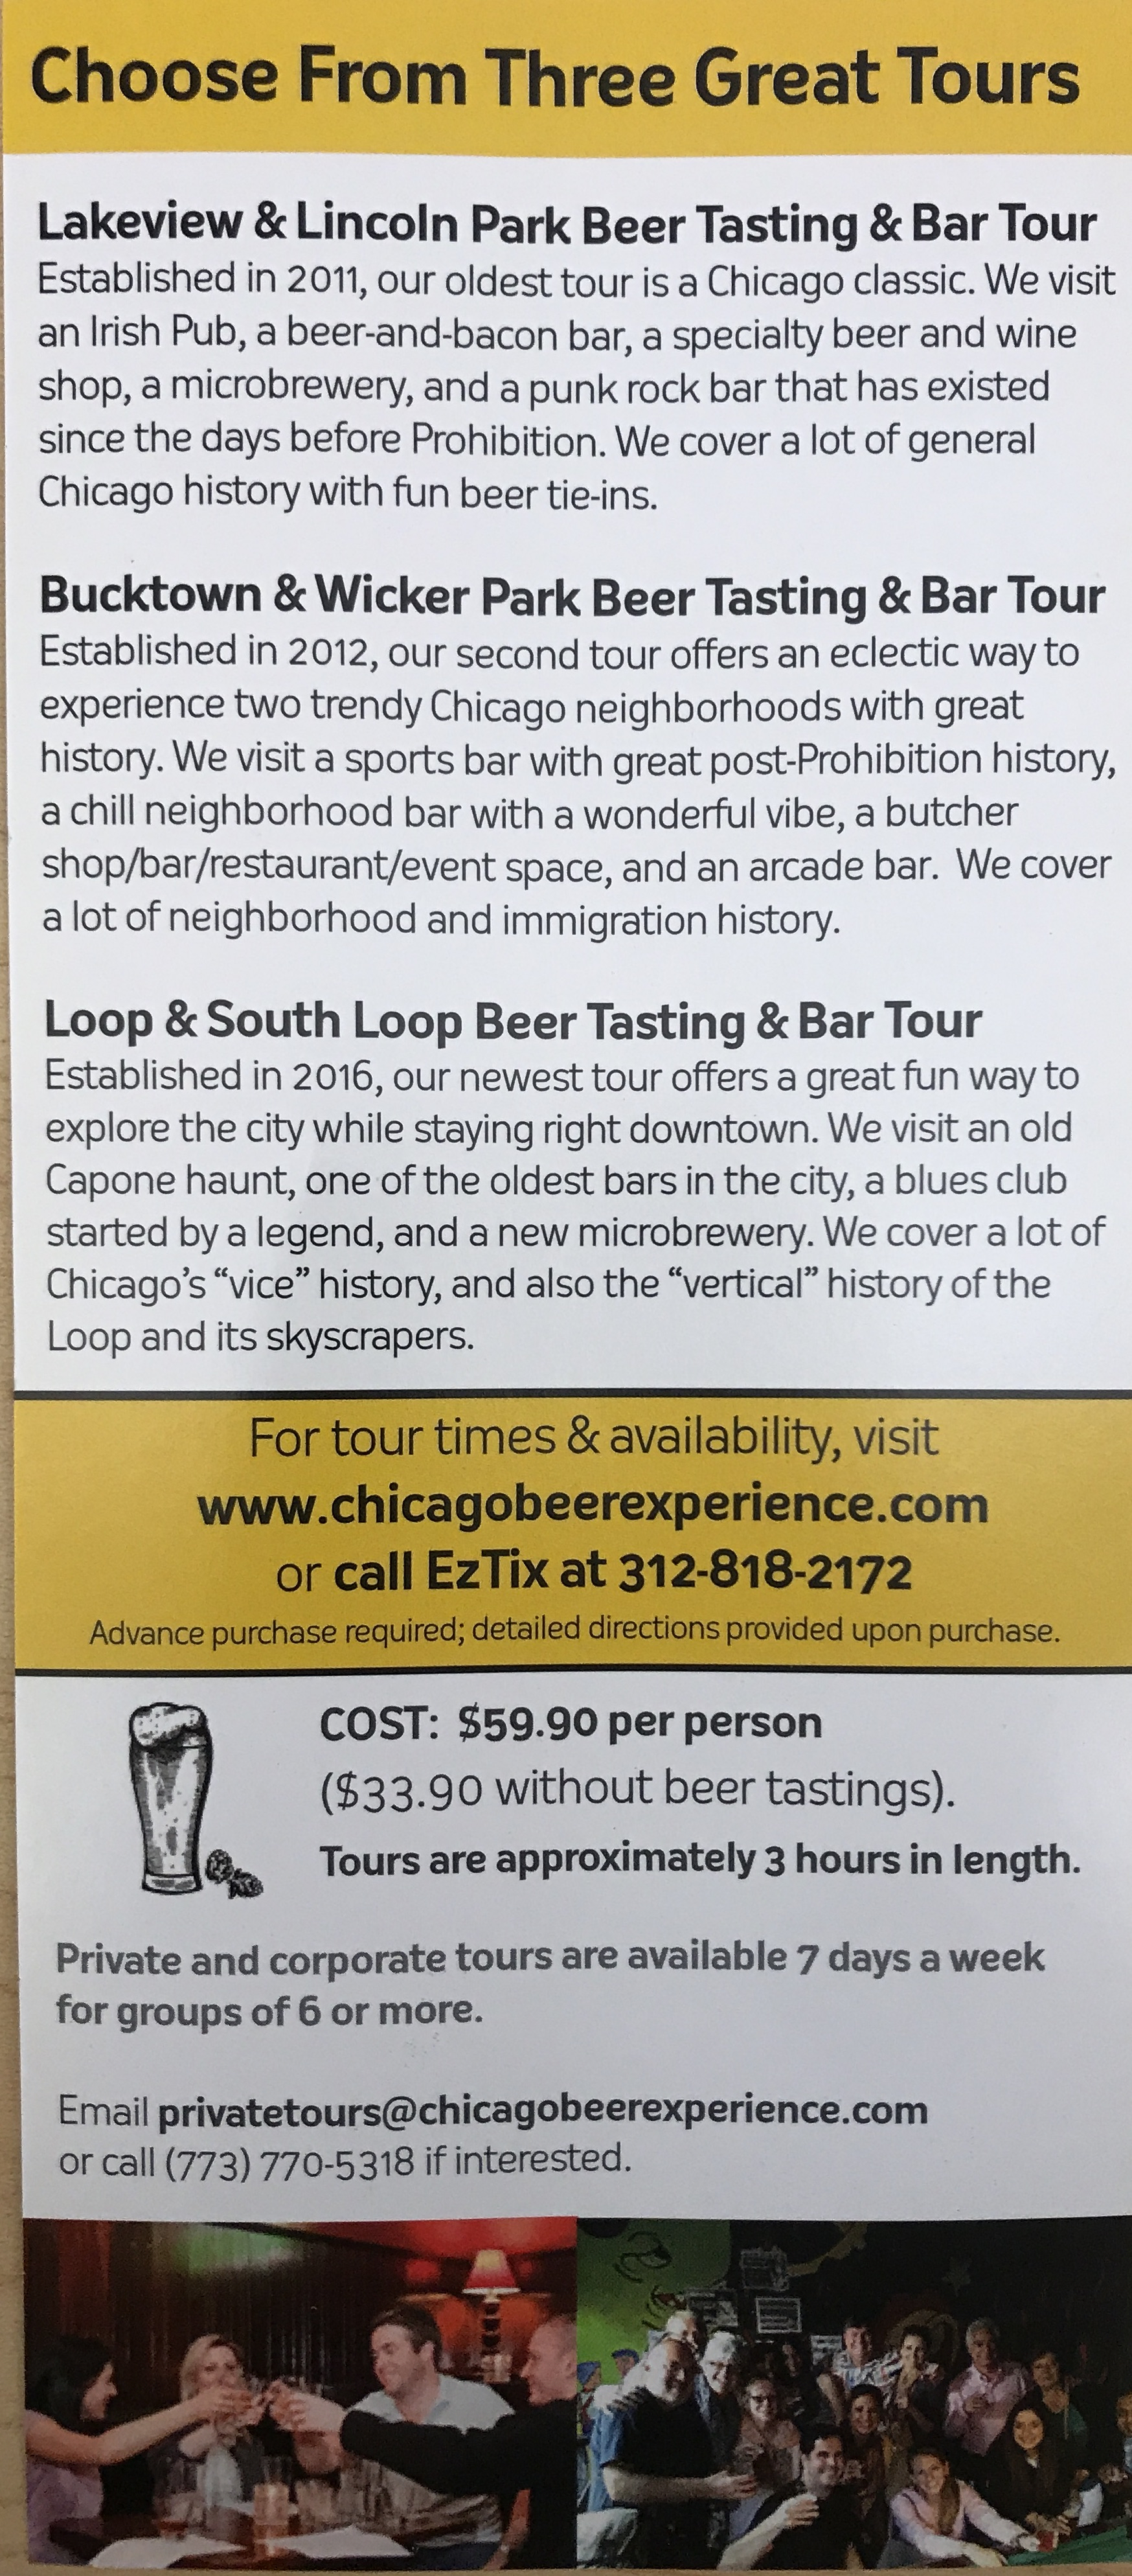 Chicago beer tours information pamphlet 1